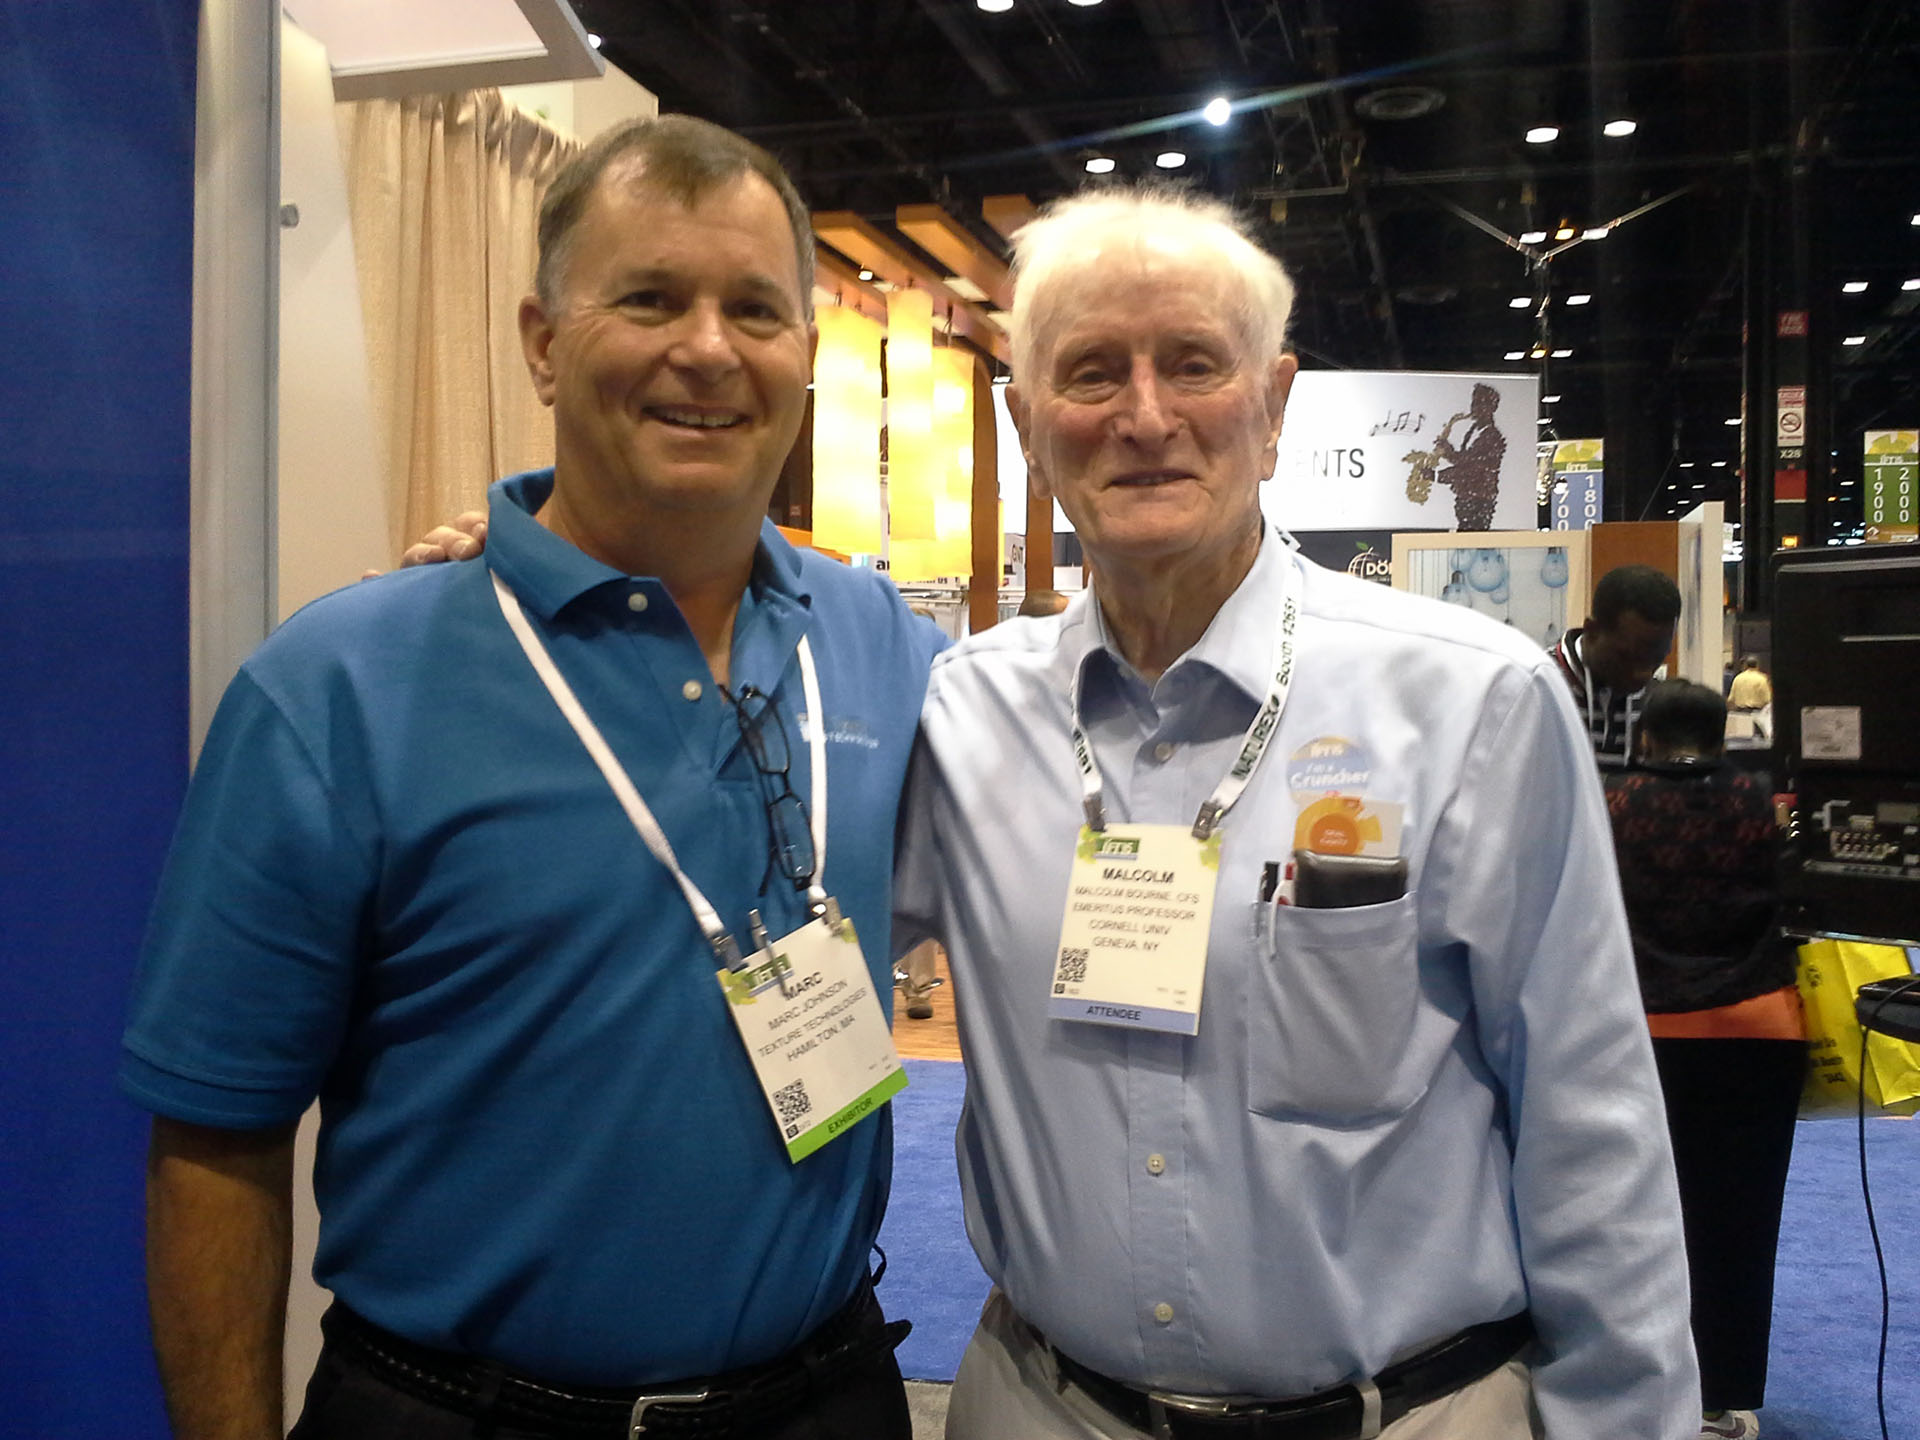 Malcolm Bourne and Marc Johnson at IFT 2015